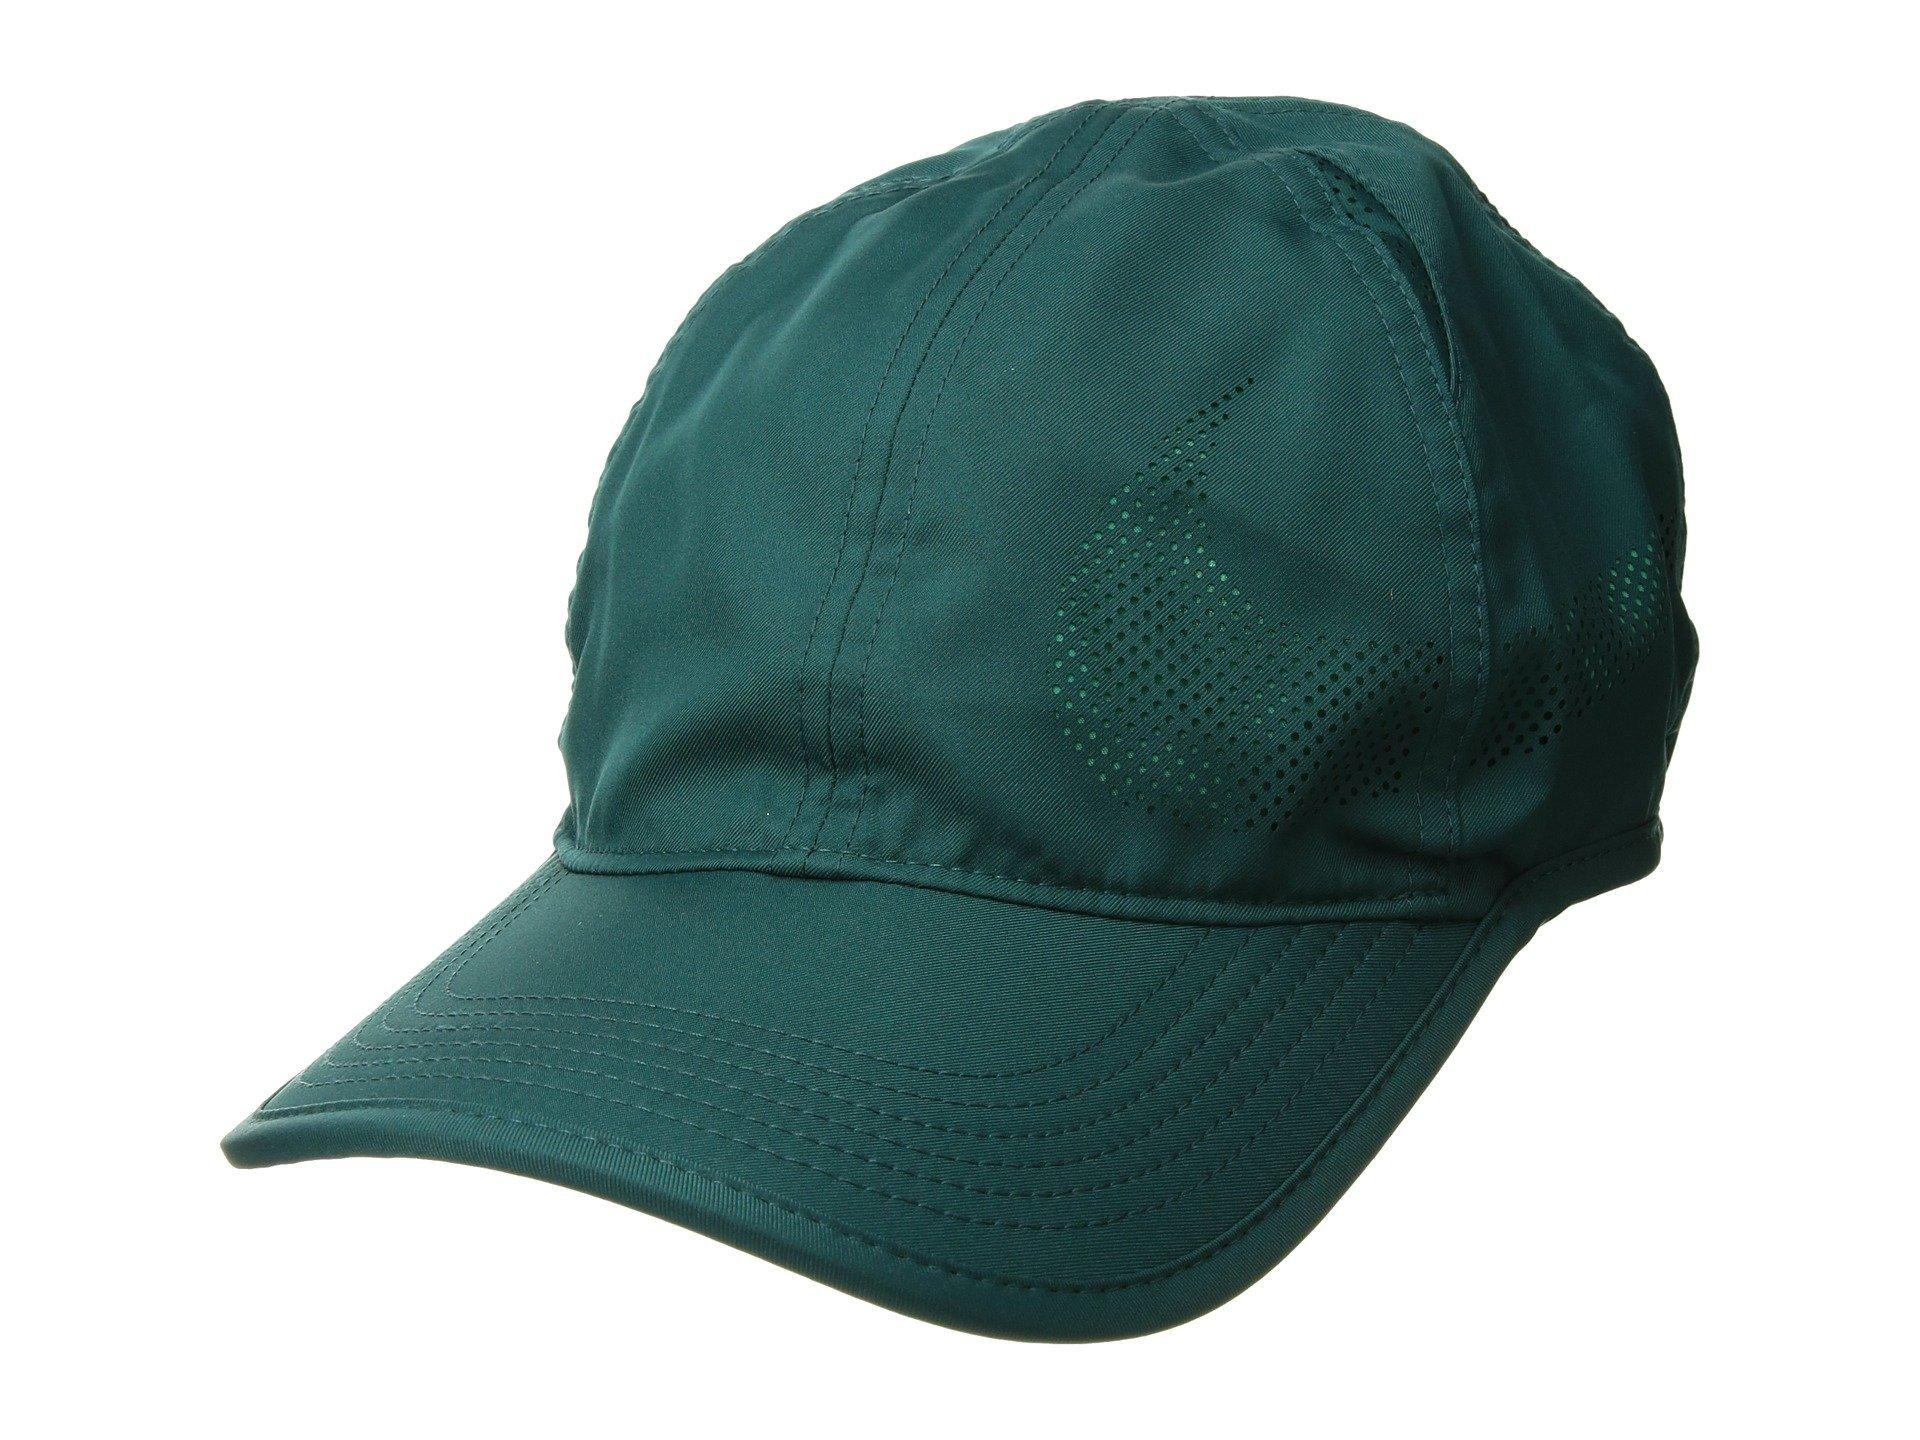 d4adba767c90e Lyst - Nike Court Aerobill Featherlight Tennis Cap in Green for Men